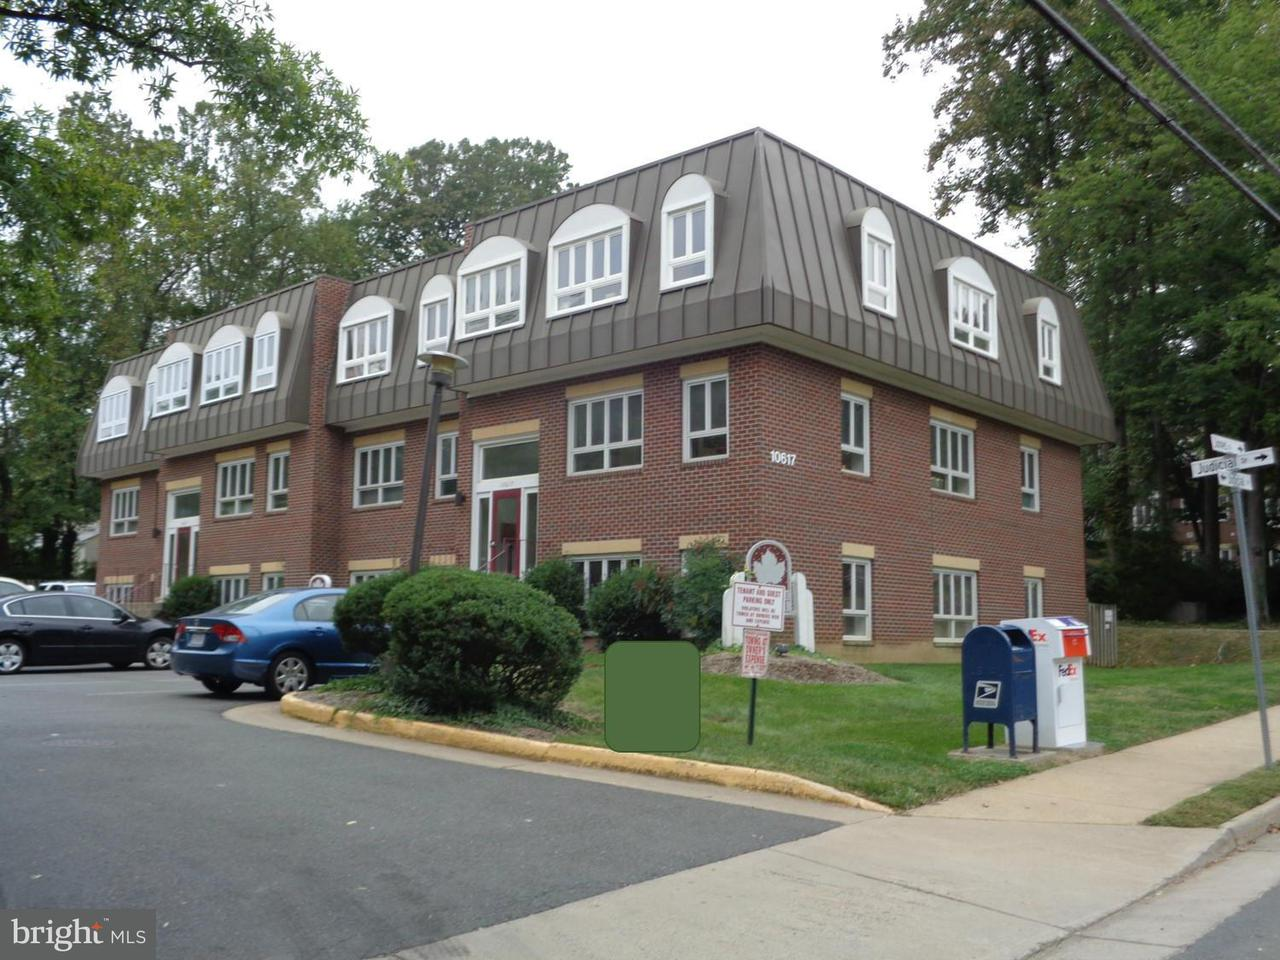 Additional photo for property listing at 10617 Jones St #101a 101b 10617 Jones St #101a 101b Fairfax, Virginia 22030 Vereinigte Staaten